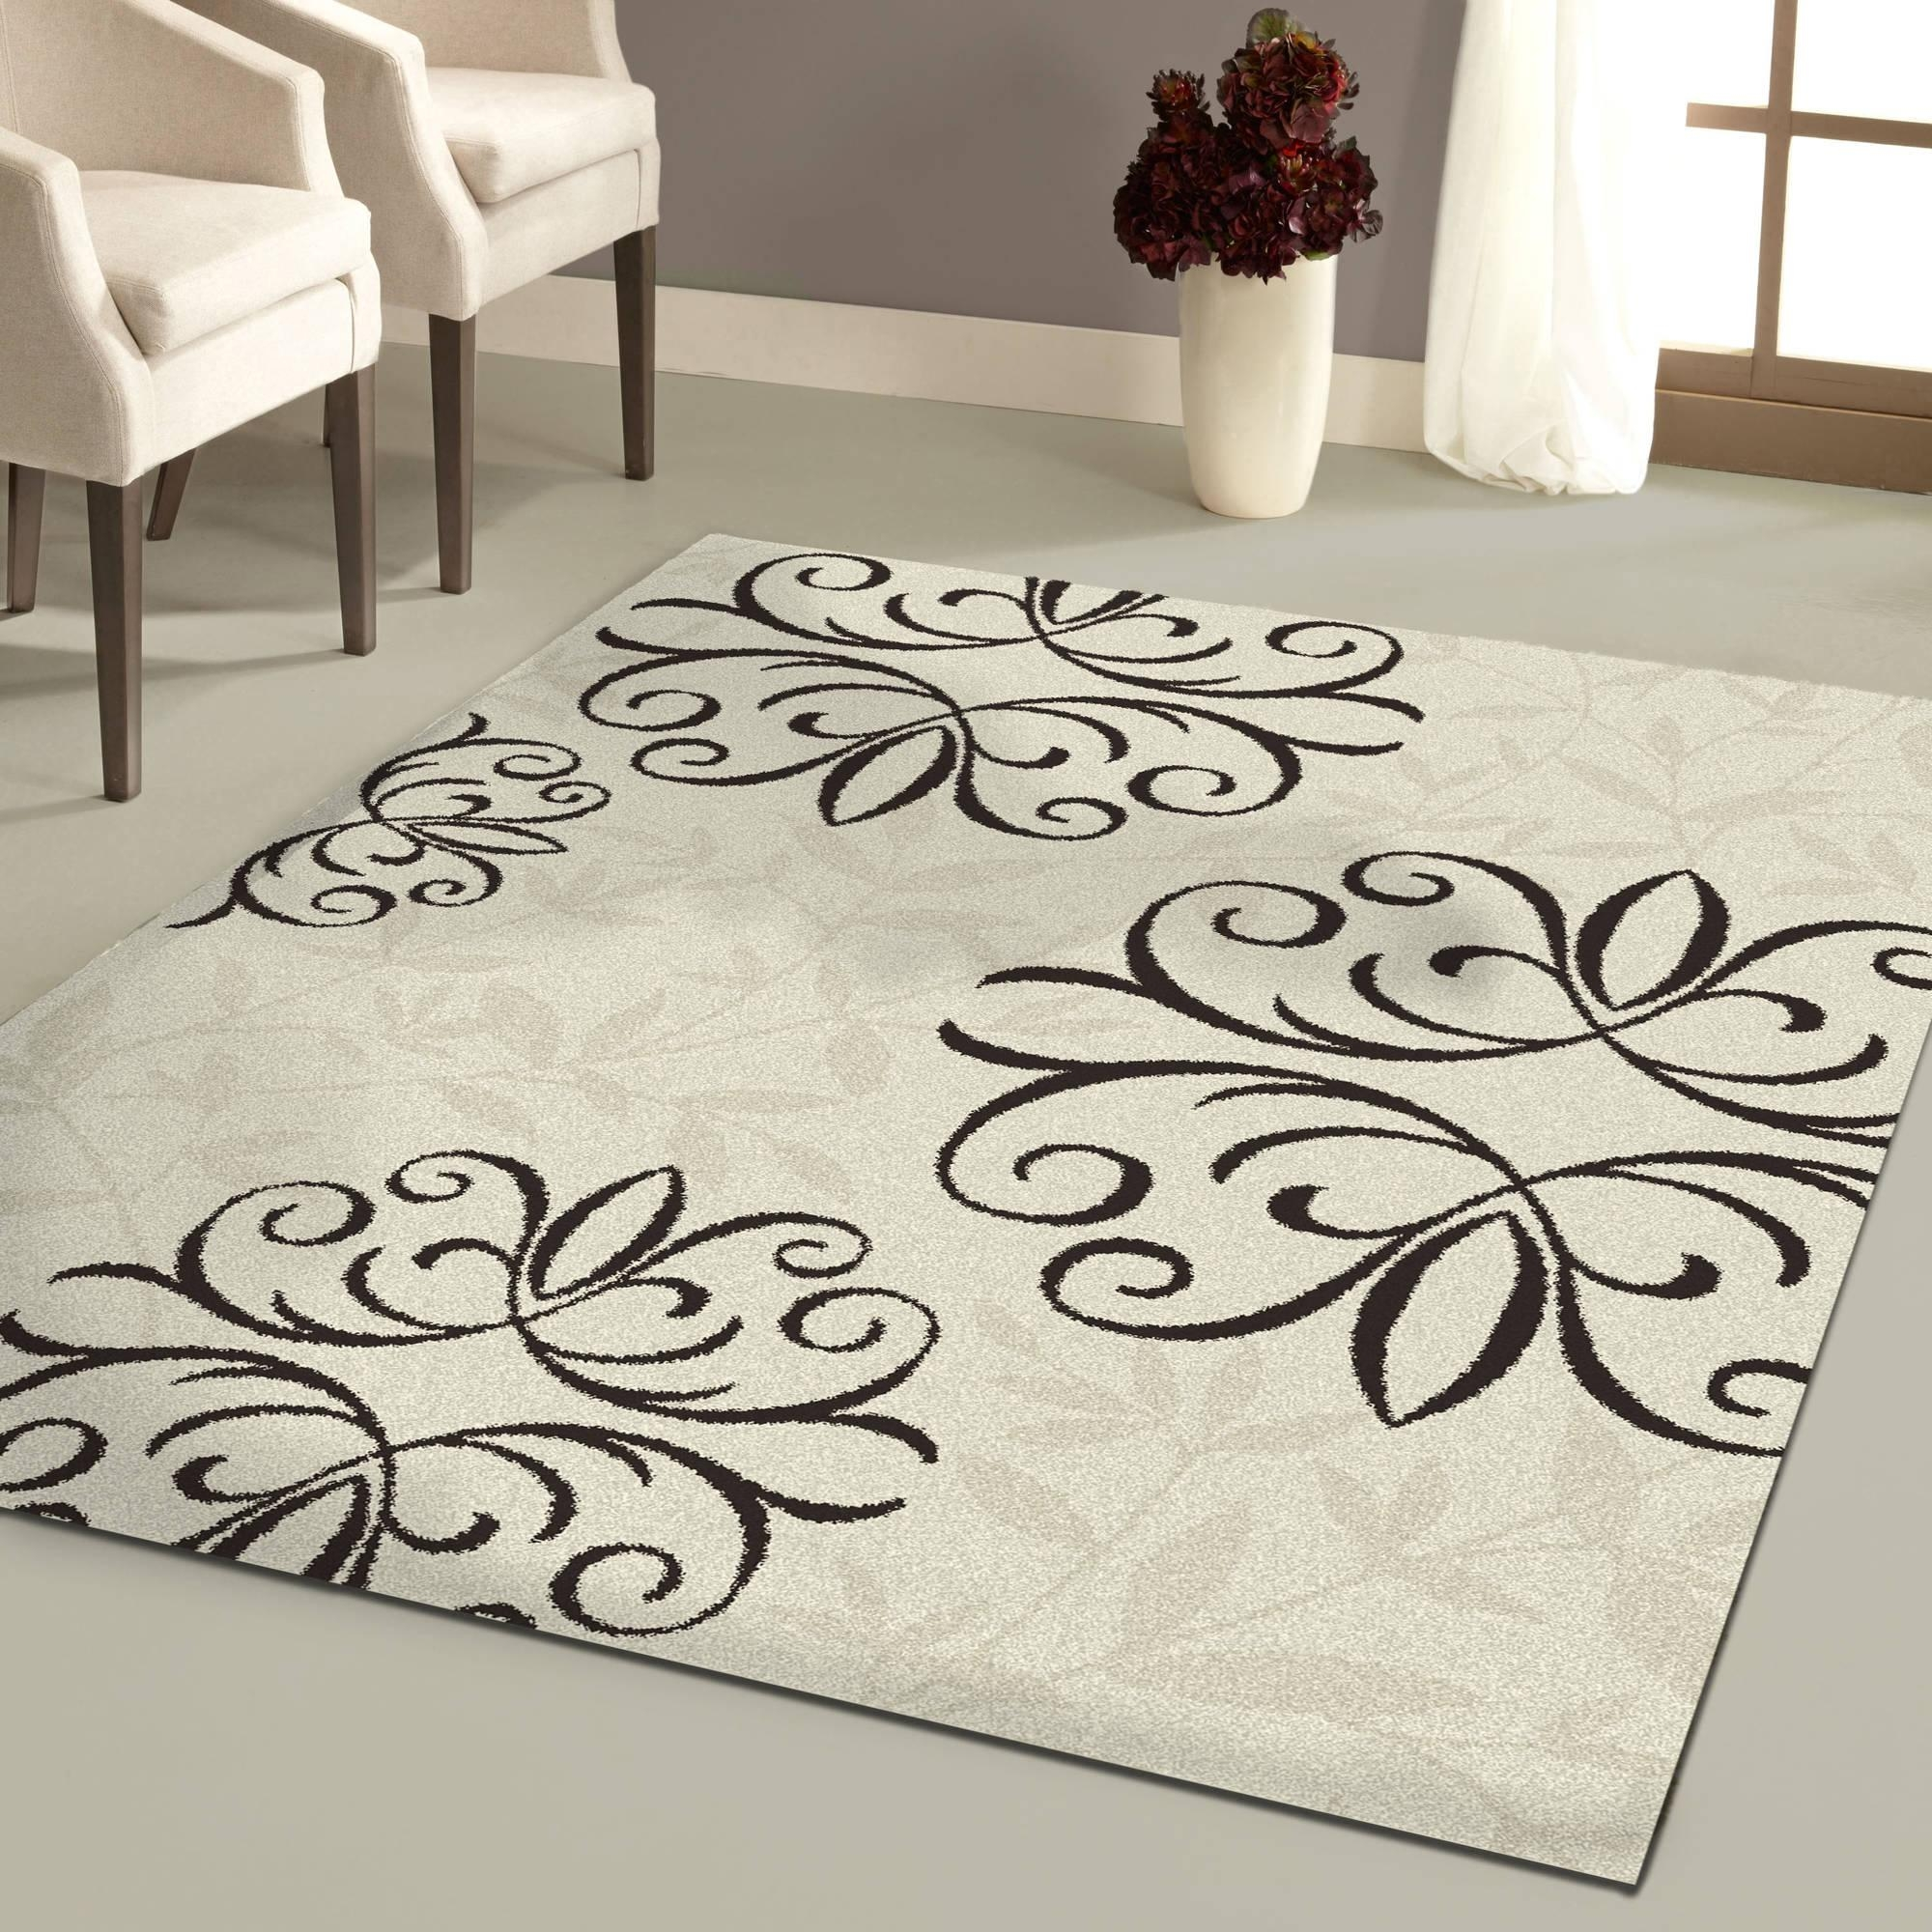 Black And White Area Rugs Stenciled Brazilian Cowhide Cheetah Pertaining To Black Wool Area Rugs (#3 of 15)